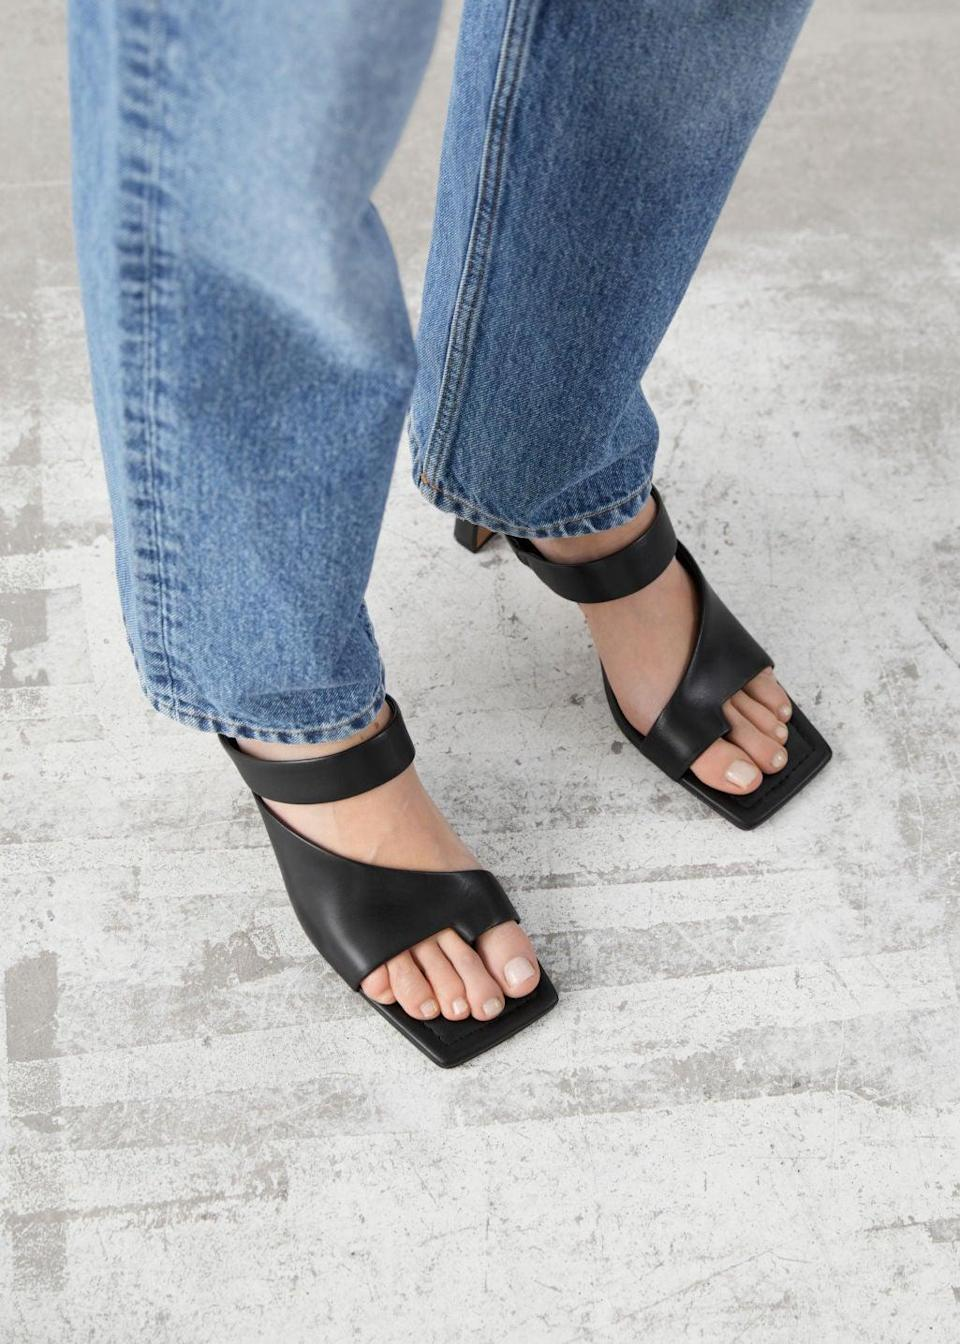 """<br><br><strong>& Other Stories</strong> Square Toe Heeled Leather Sandals, $, available at <a href=""""https://go.skimresources.com/?id=30283X879131&url=https%3A%2F%2Fwww.stories.com%2Fen_usd%2Fshoes%2Fheeled-sandals%2Fproduct.square-toe-heeled-leather-sandals-black.0934936001.html"""" rel=""""nofollow noopener"""" target=""""_blank"""" data-ylk=""""slk:& Other Stories"""" class=""""link rapid-noclick-resp"""">& Other Stories</a>"""